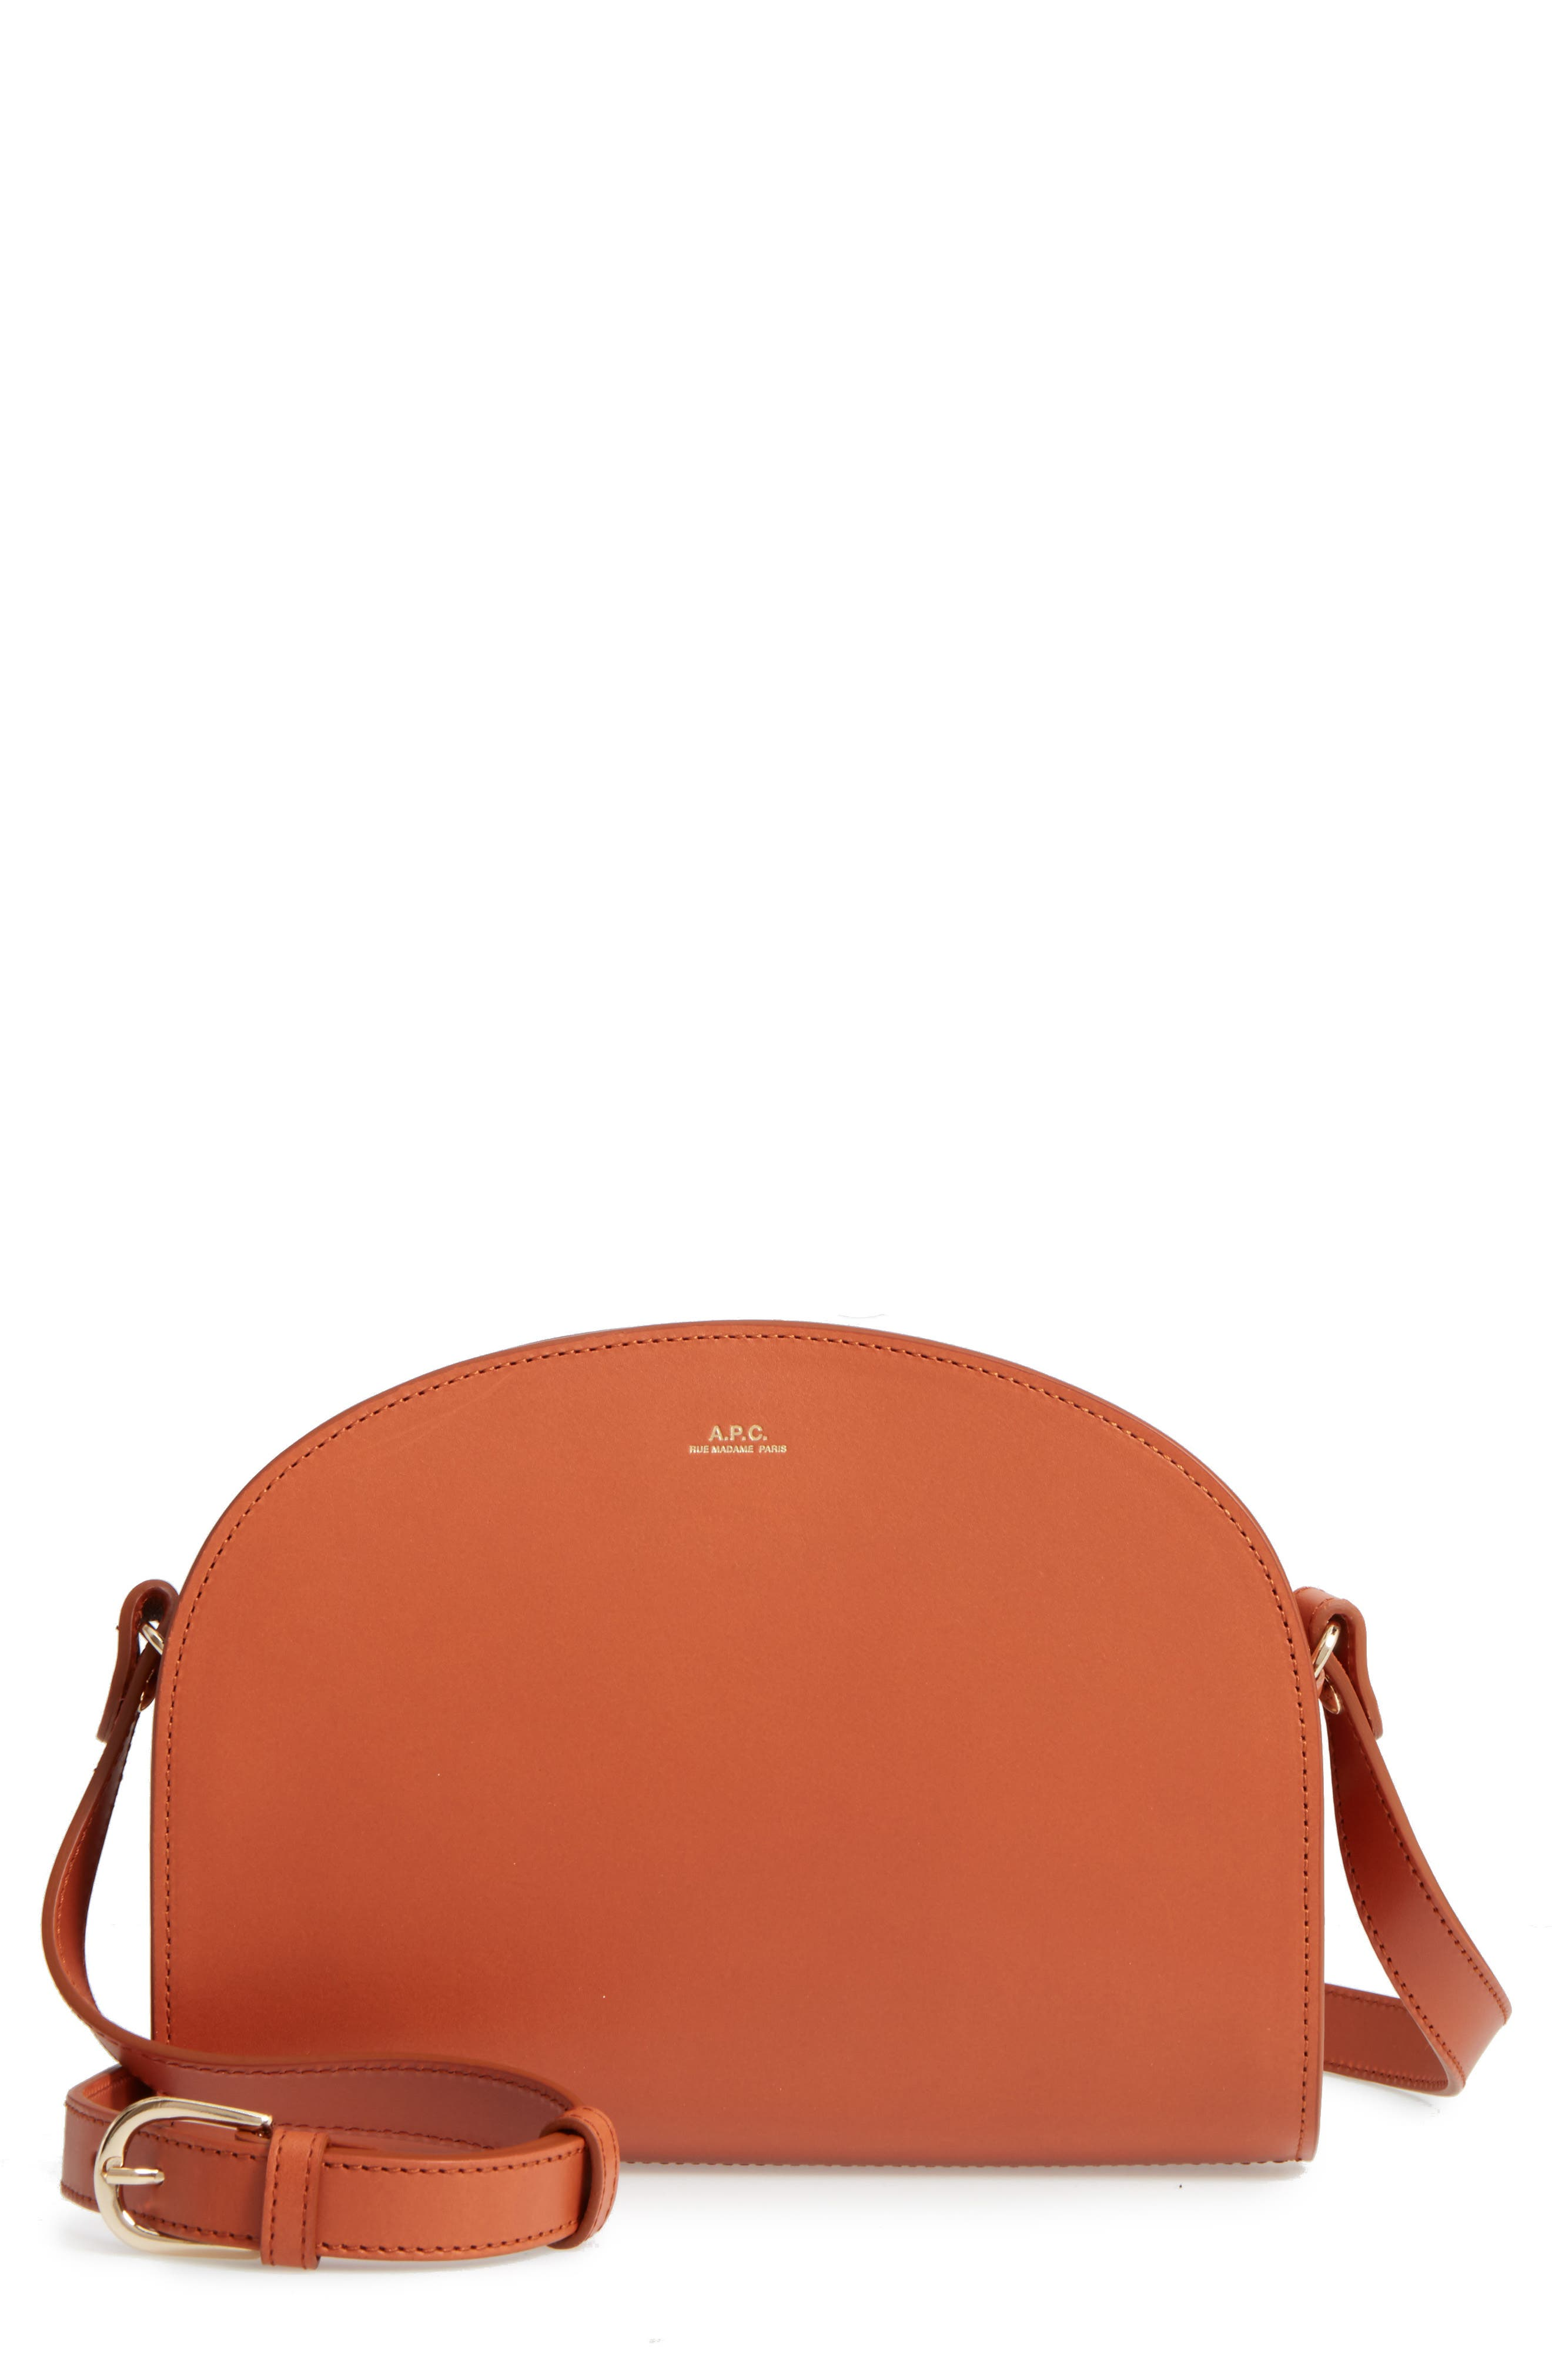 Alternate Image 1 Selected - A.P.C. Half Moon Calfskin Leather Crossbody Bag